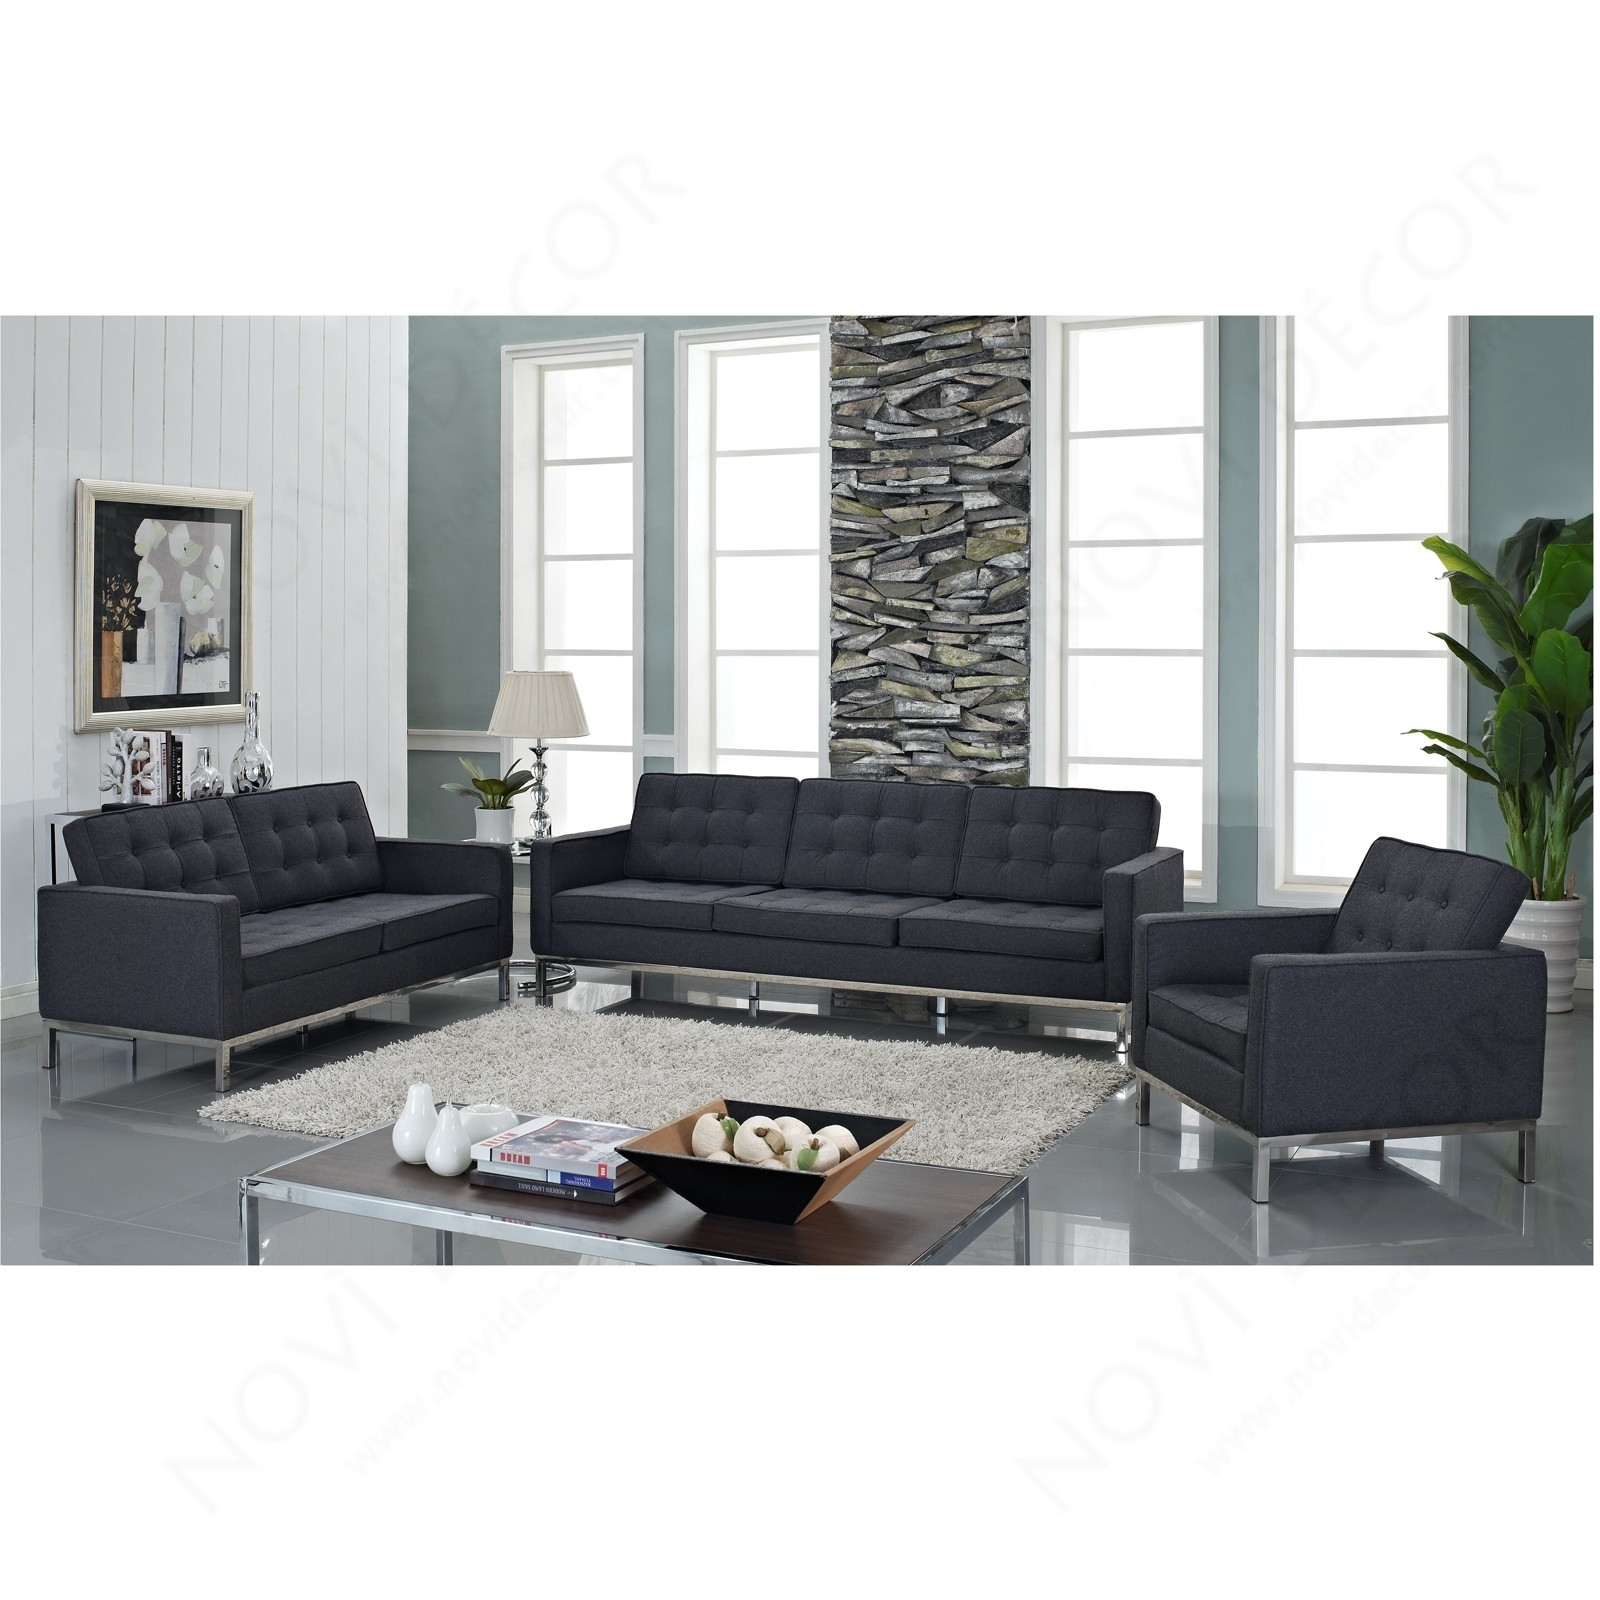 Florence Style Sofa In Wool Multiple Colors Designer Reproduction Pertaining To Florence Sofas (Image 7 of 15)